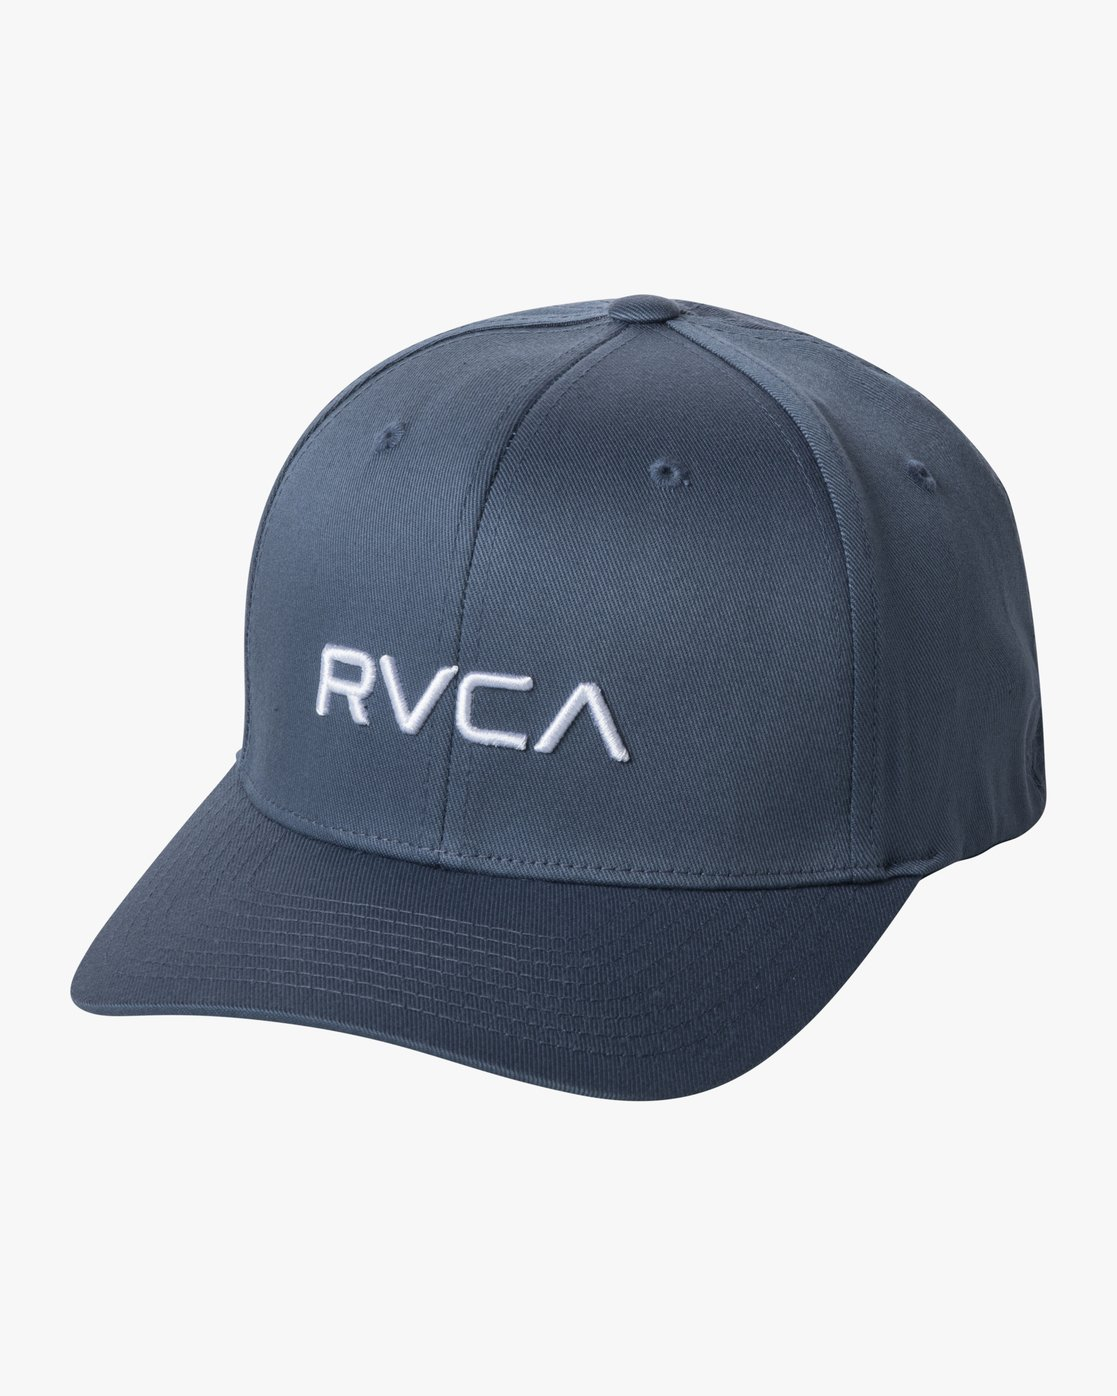 0 RVCA FLEX FIT HAT Green MHAHWRFF RVCA